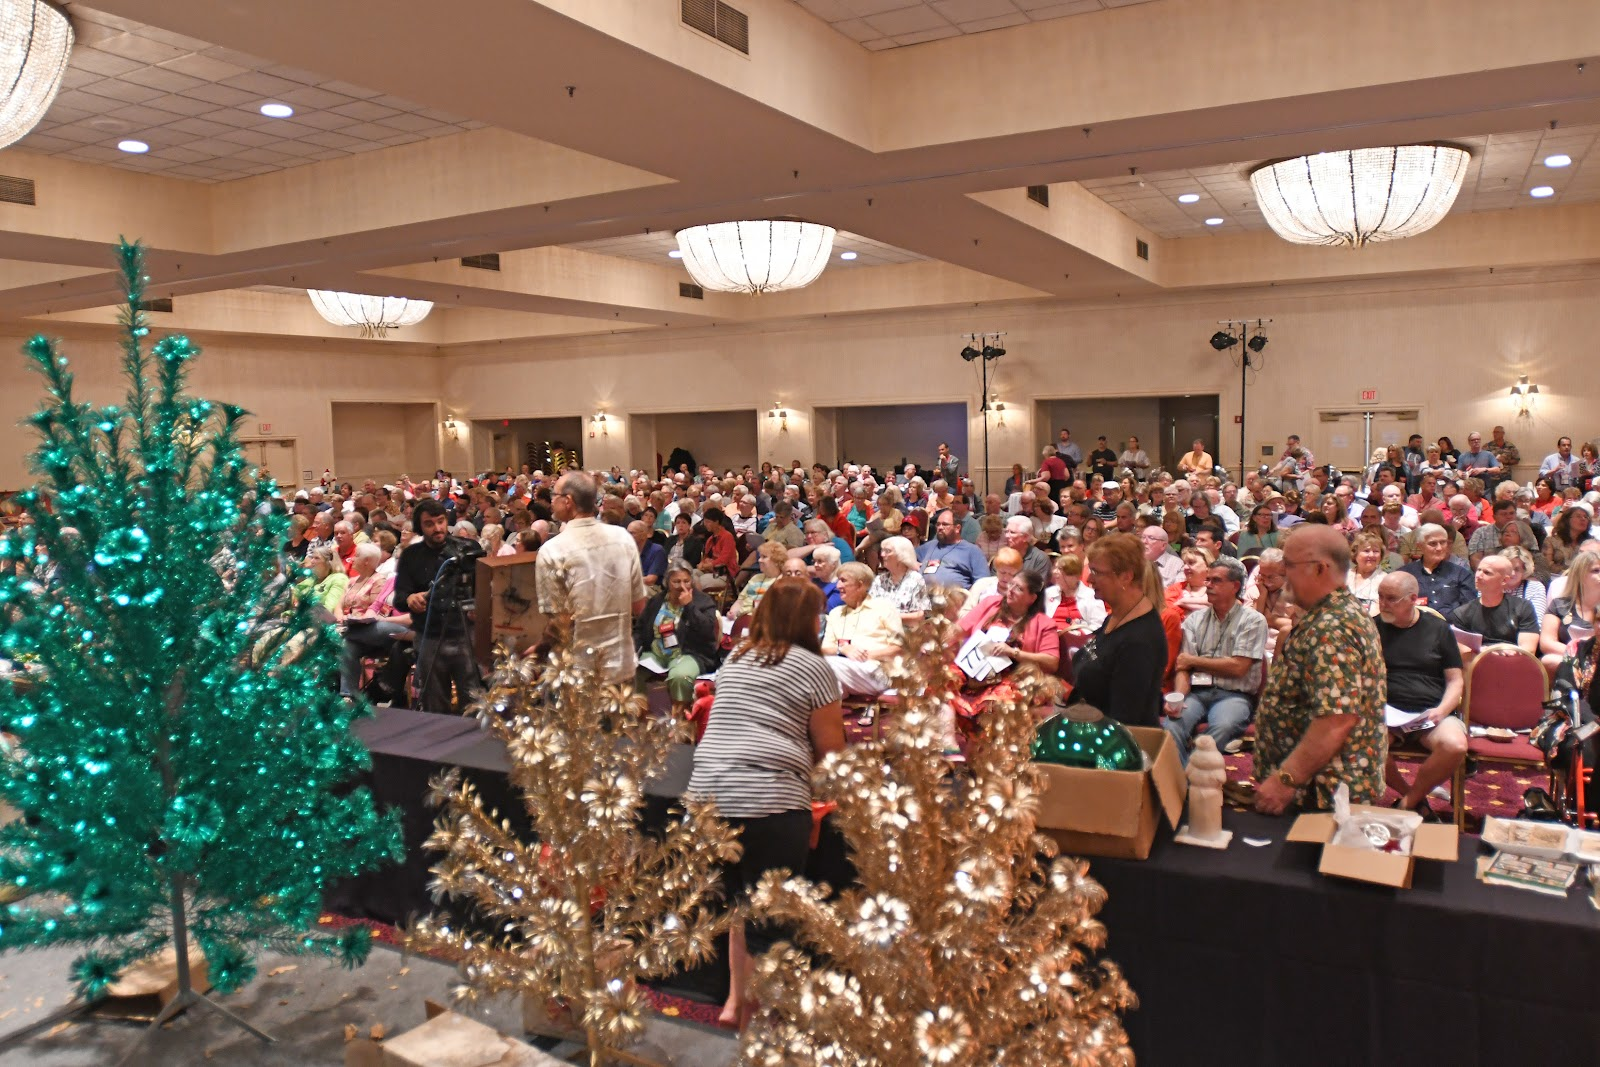 Auction floor of the 2018 Golden Glow Convention in Cincinnati, Ohio. Photo courtesy of The Golden Glow of Christmas Past.